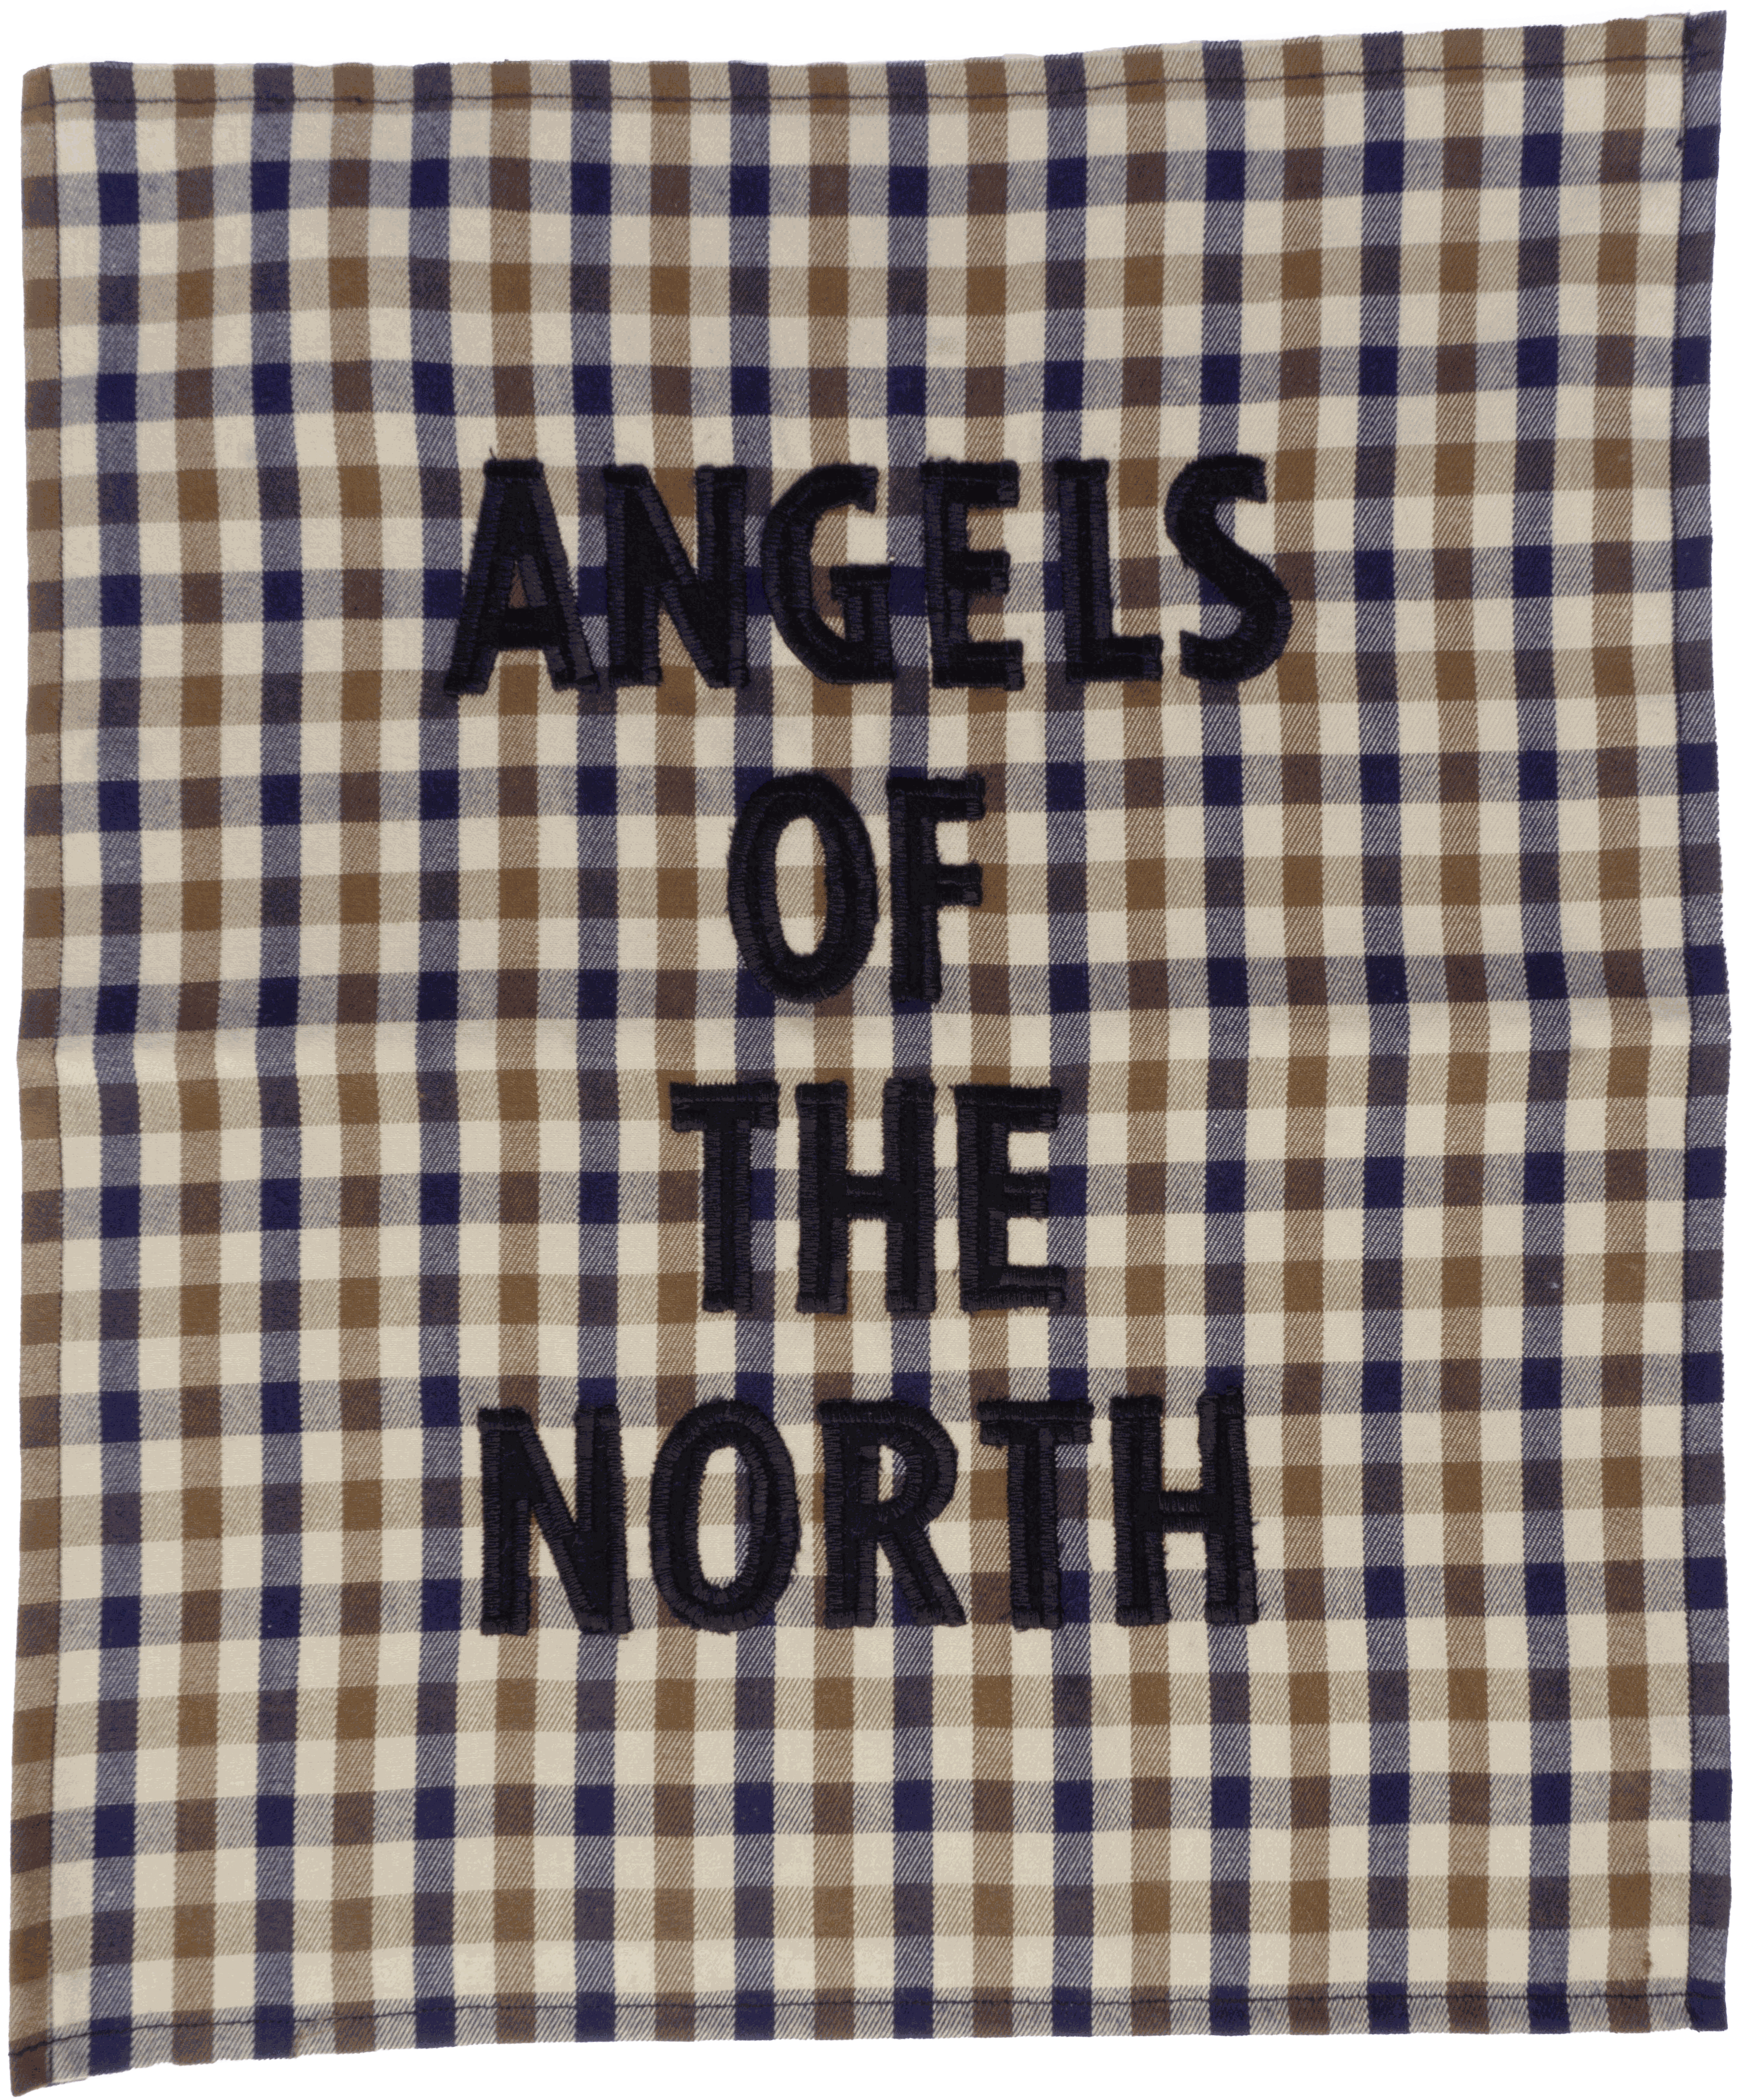 ANGELS OF THE NORTH by Corbin Shaw